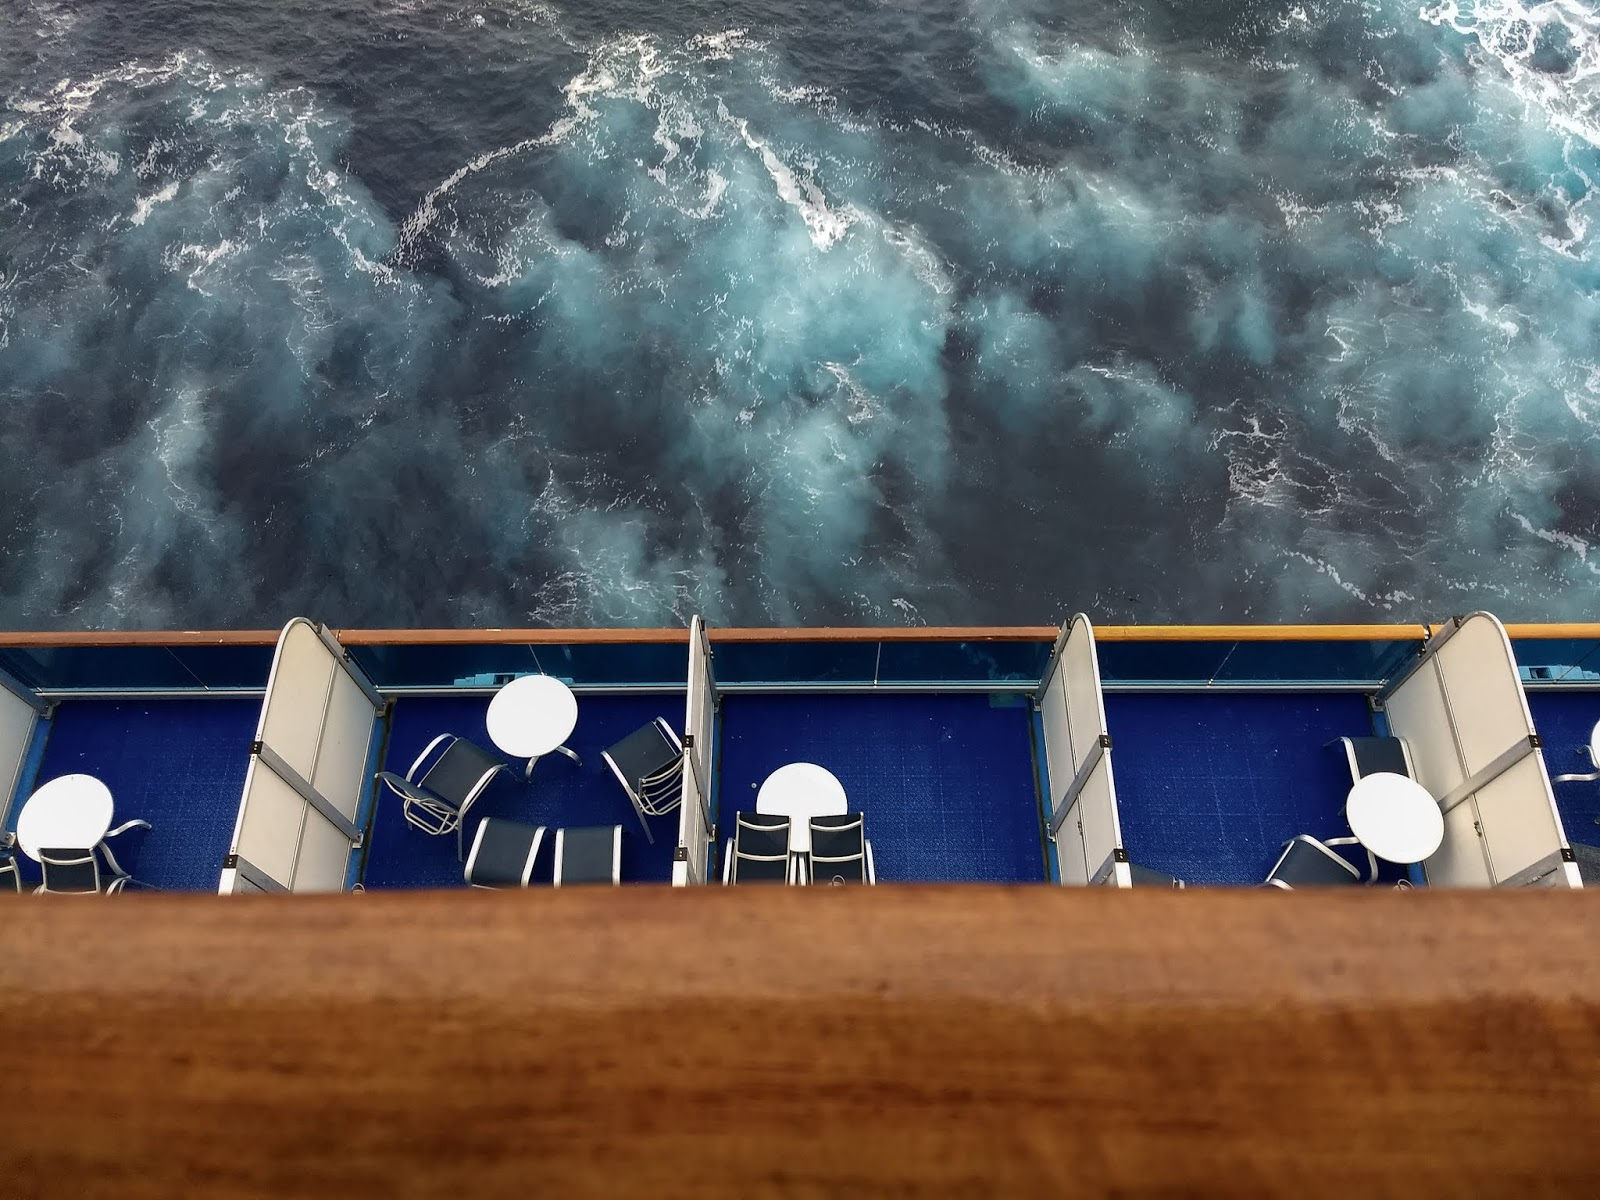 An aerial view of balconies on a cruise ship and agitated sea water.